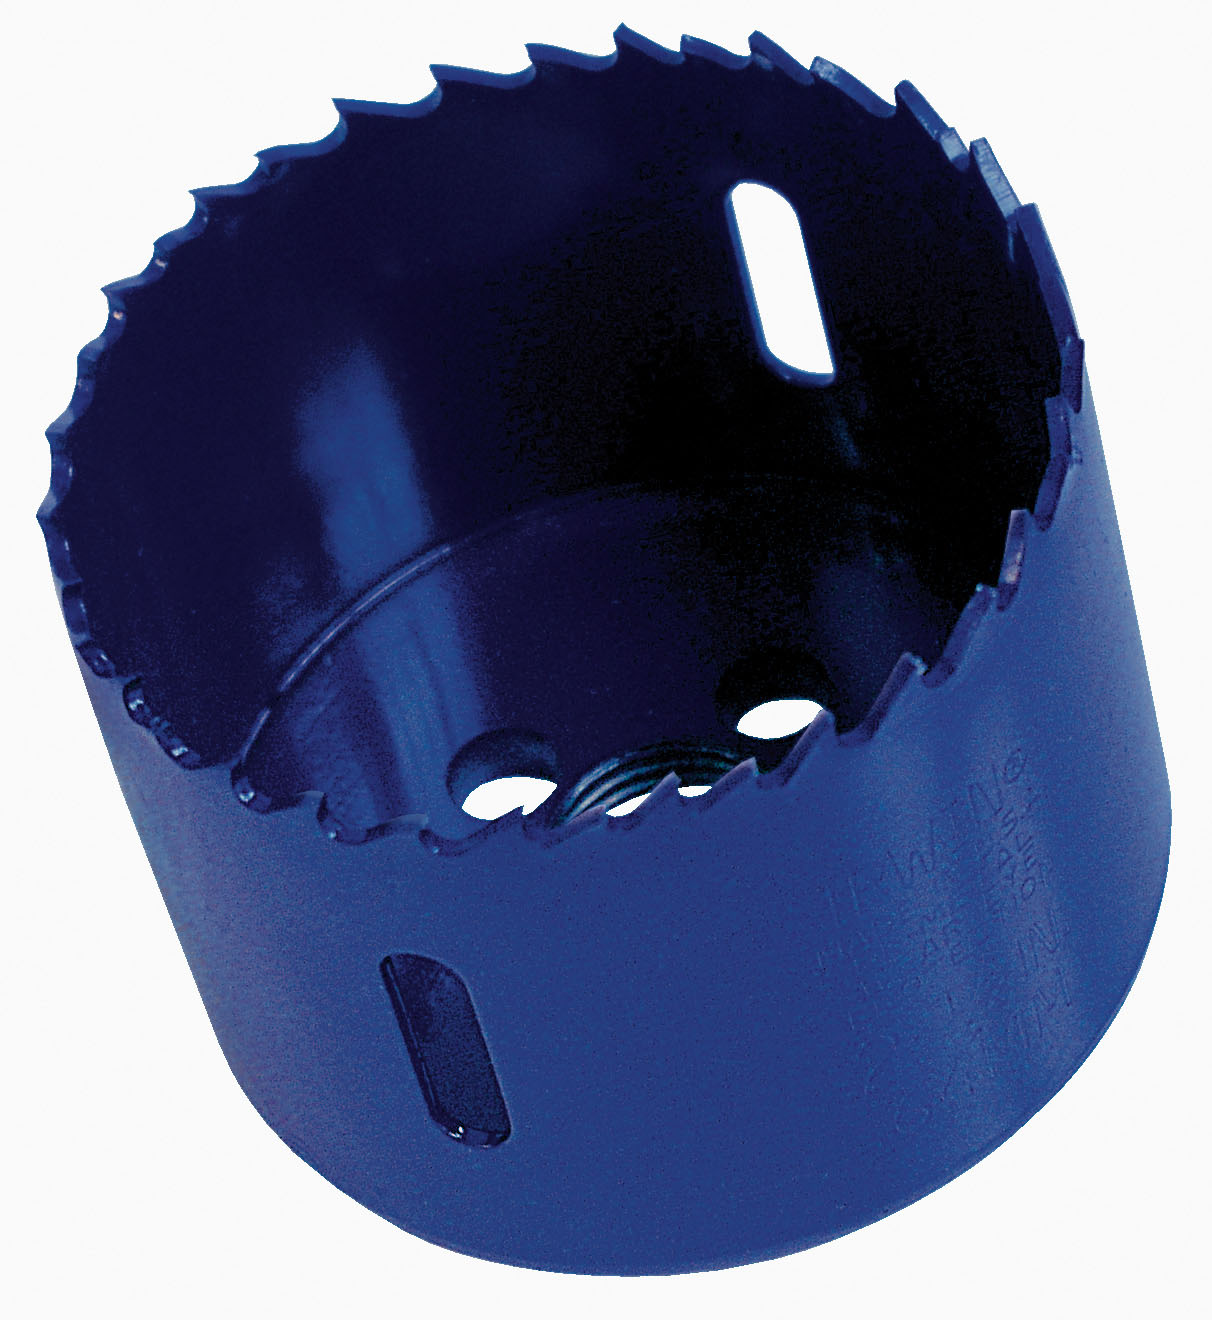 IRWIN 10504161 - Bi-Metal Holesaw 14mm – 9/16in